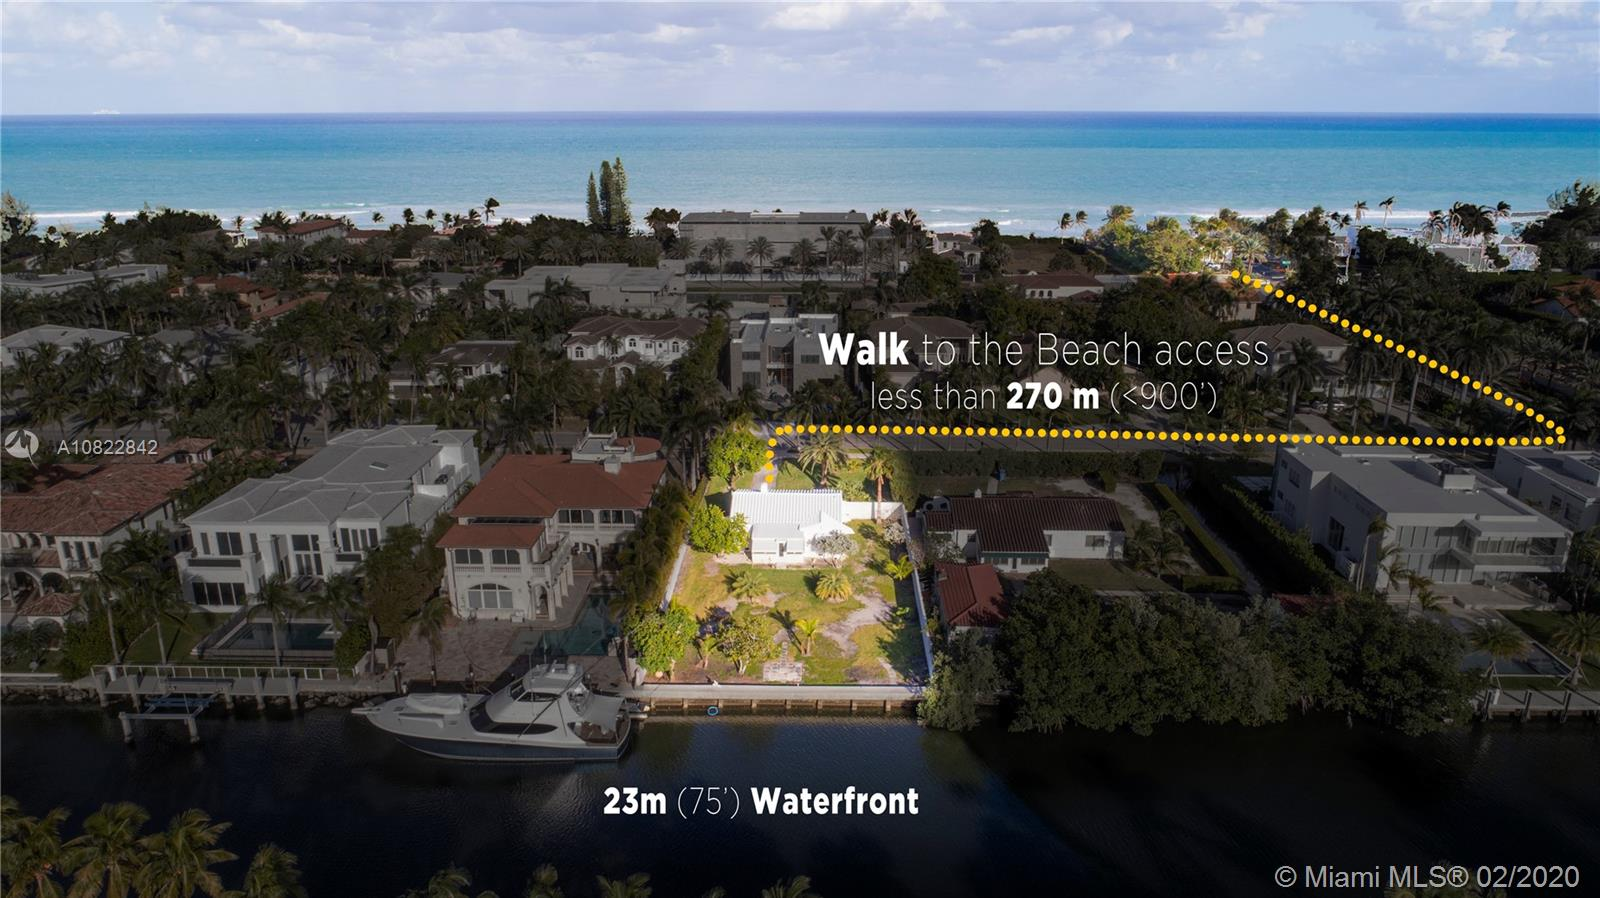 One of a kind land in Golden Beach, with 75 ft of water frontage. Conveniently located less than 5 minutes walking to the beach. Perfect land to build your dream house!